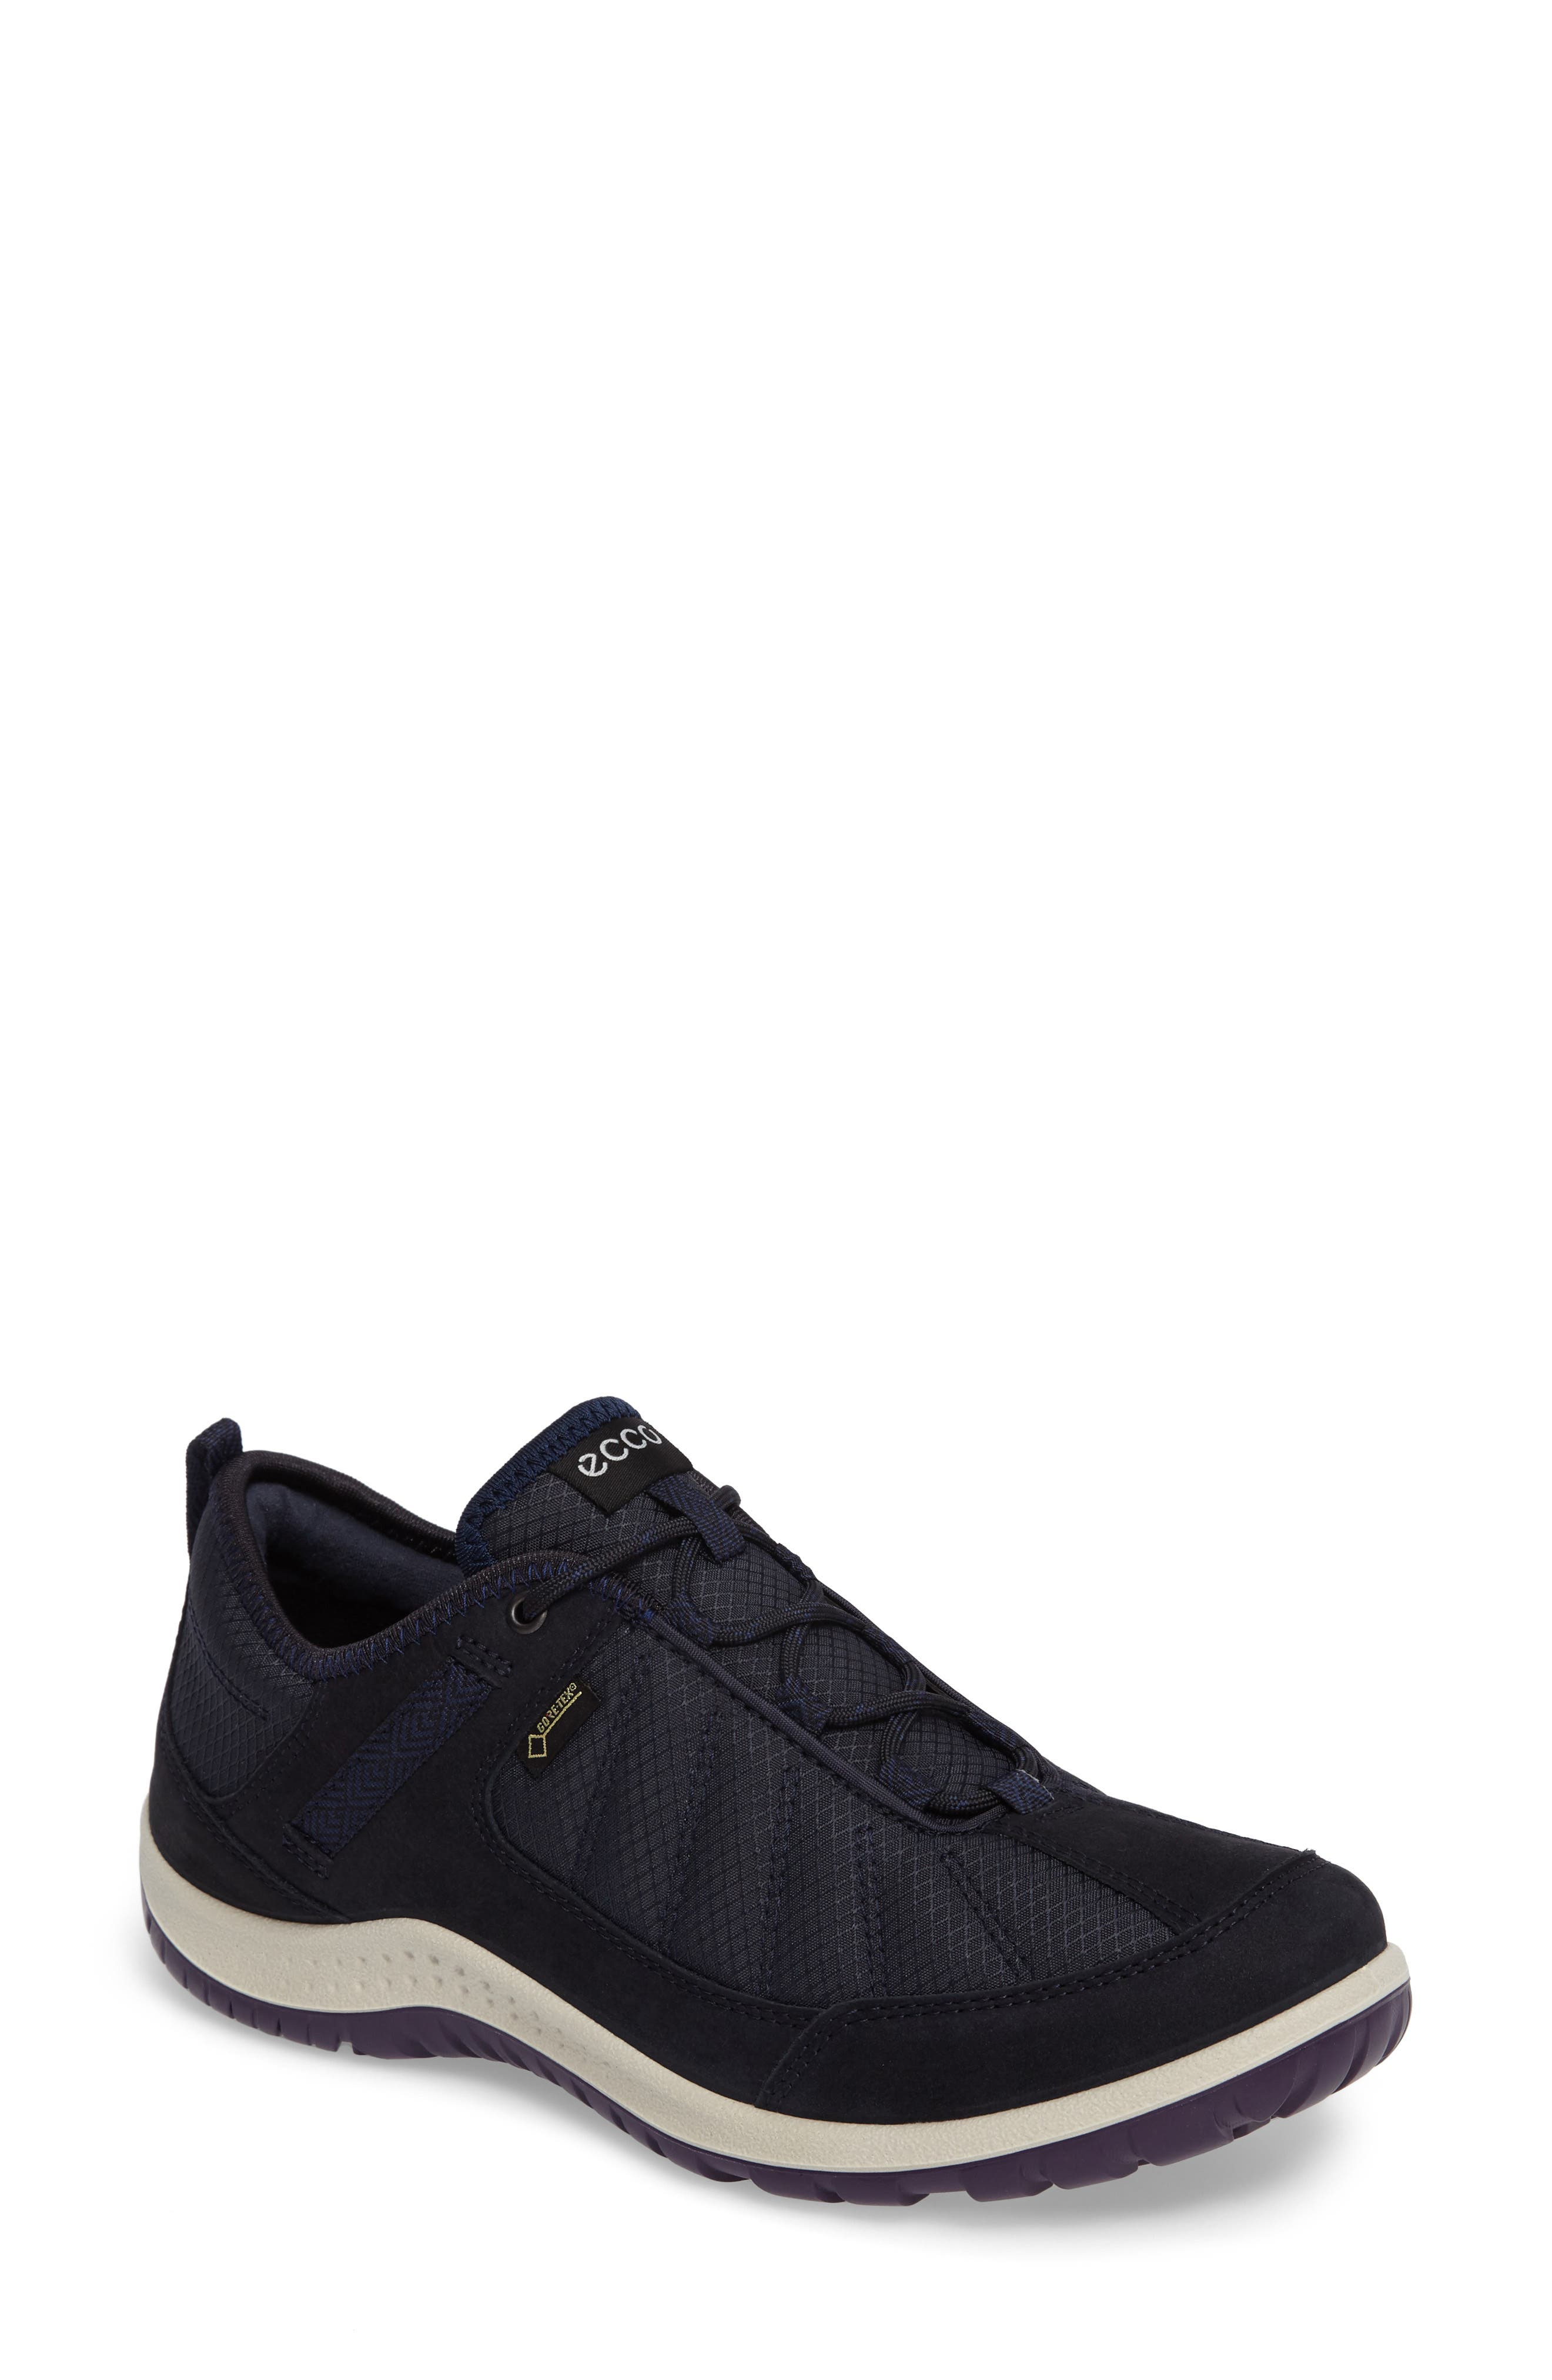 Aspina GTX Waterproof Sneaker,                         Main,                         color, Navy Leather